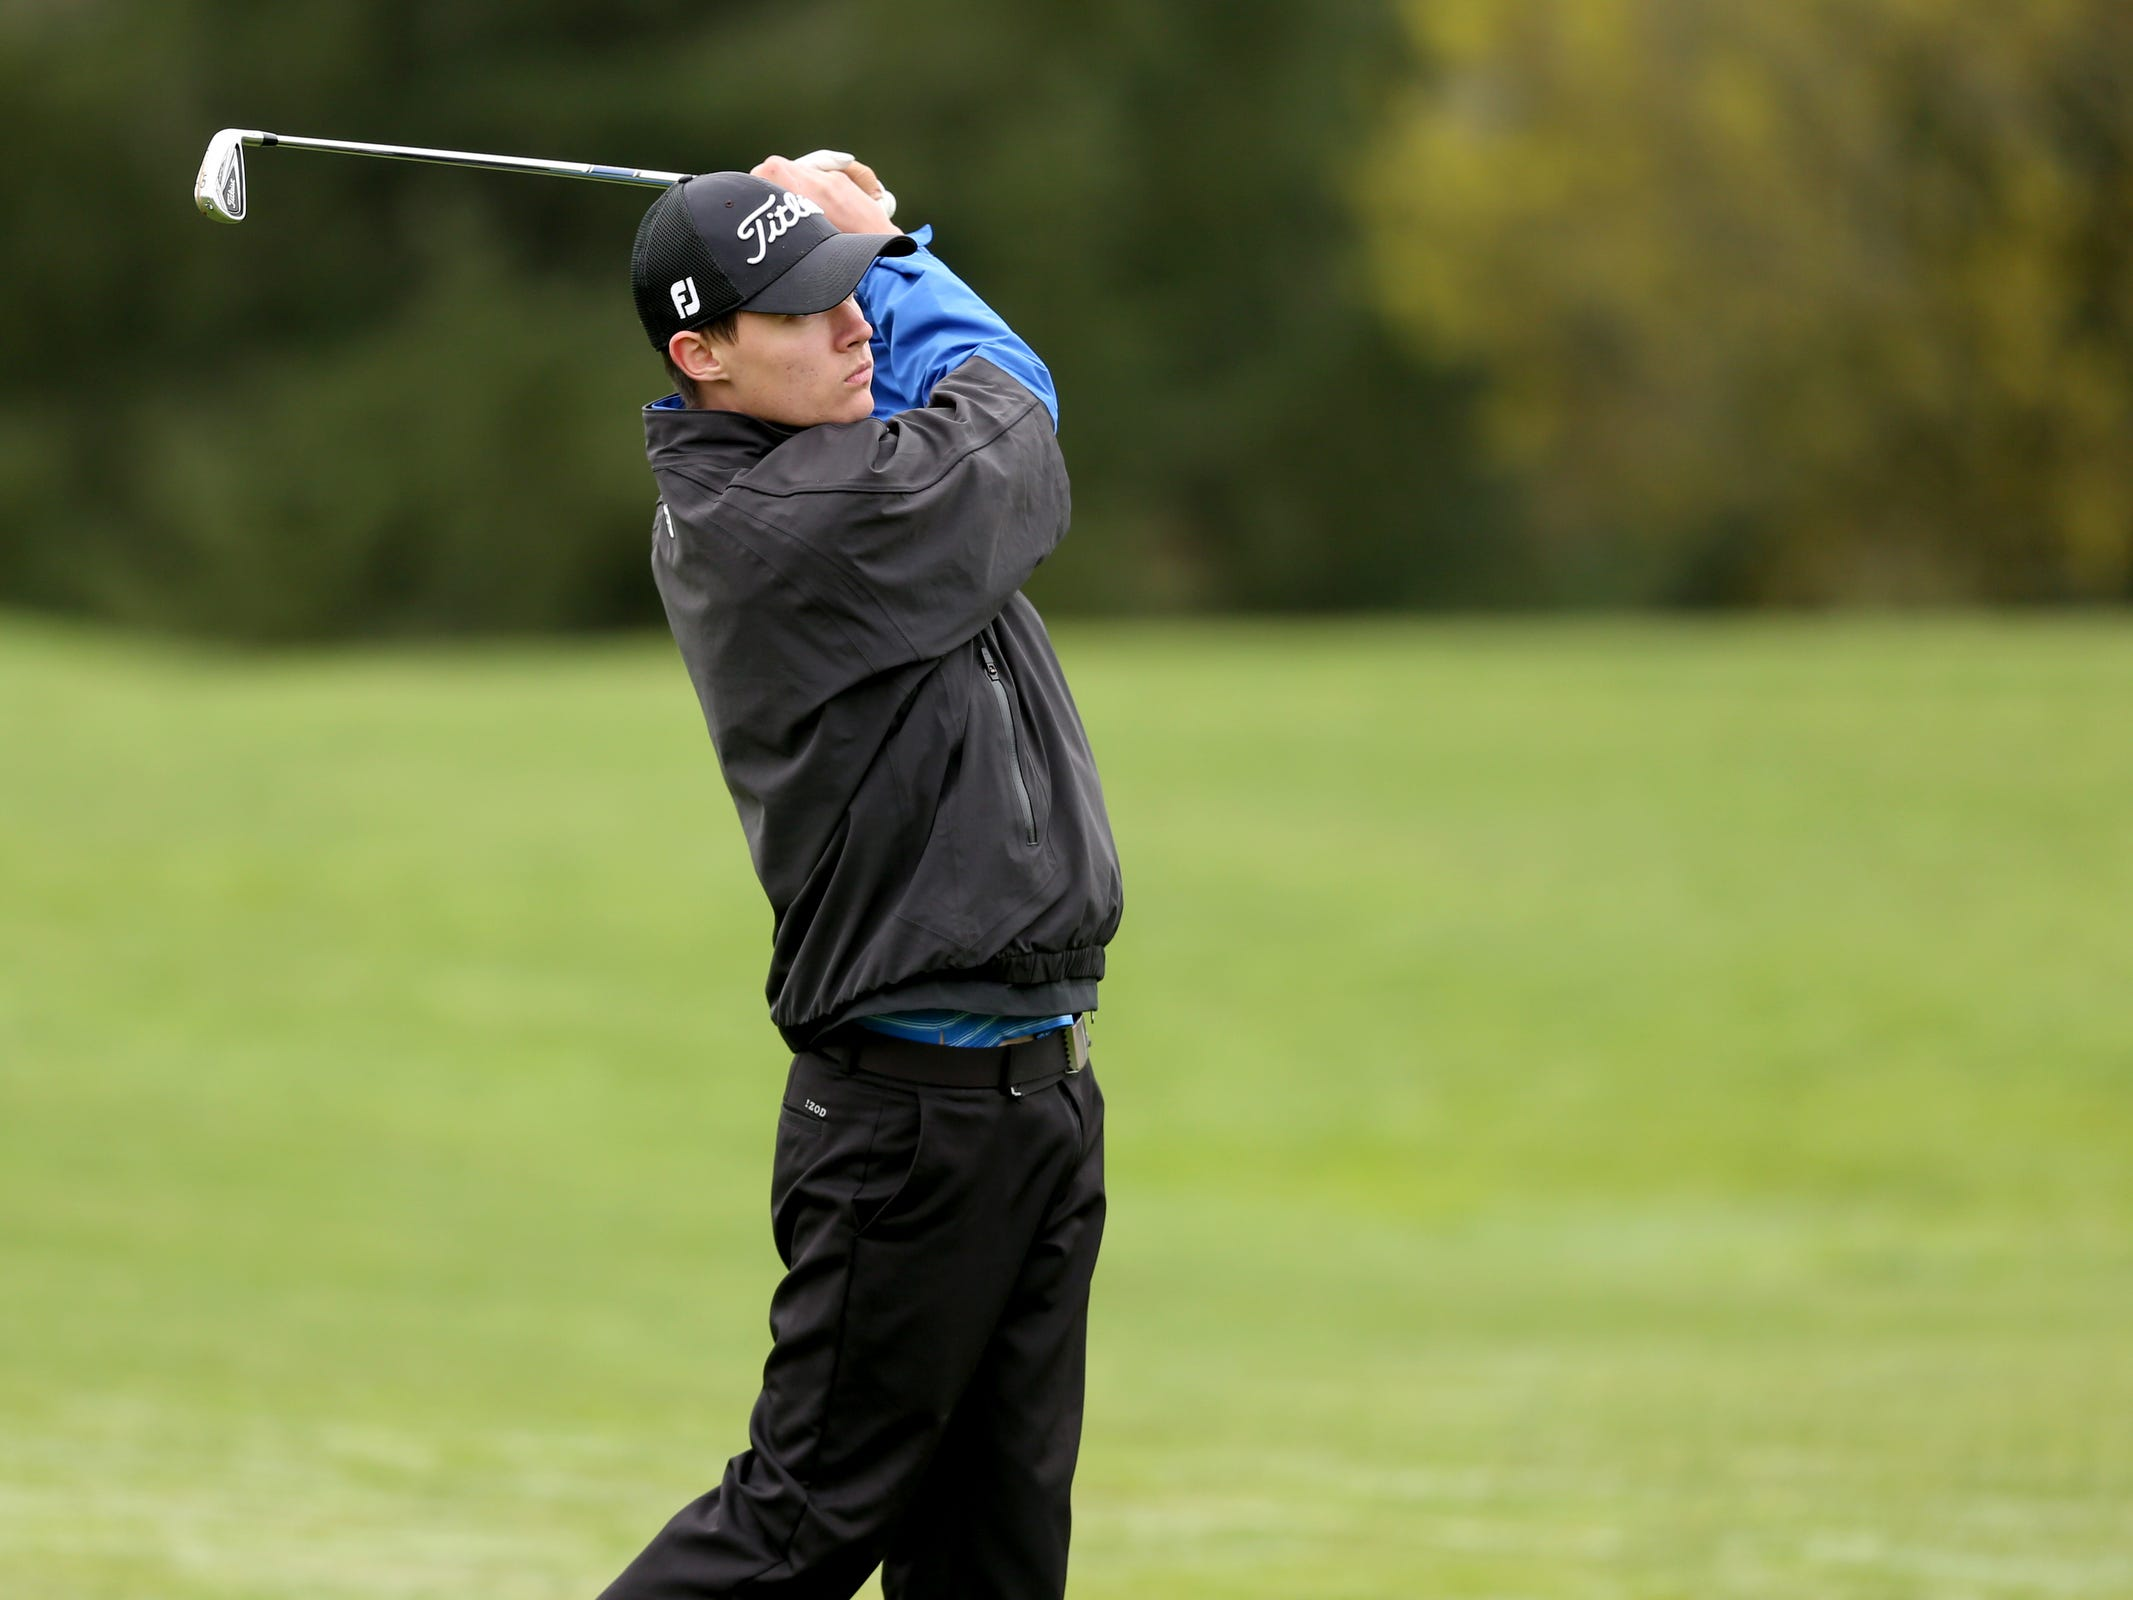 McNary's Joel Dutcher competes during a Mountain Valley Conference league high school golf match at Creekside Golf Club in Salem on April 15, 2019.